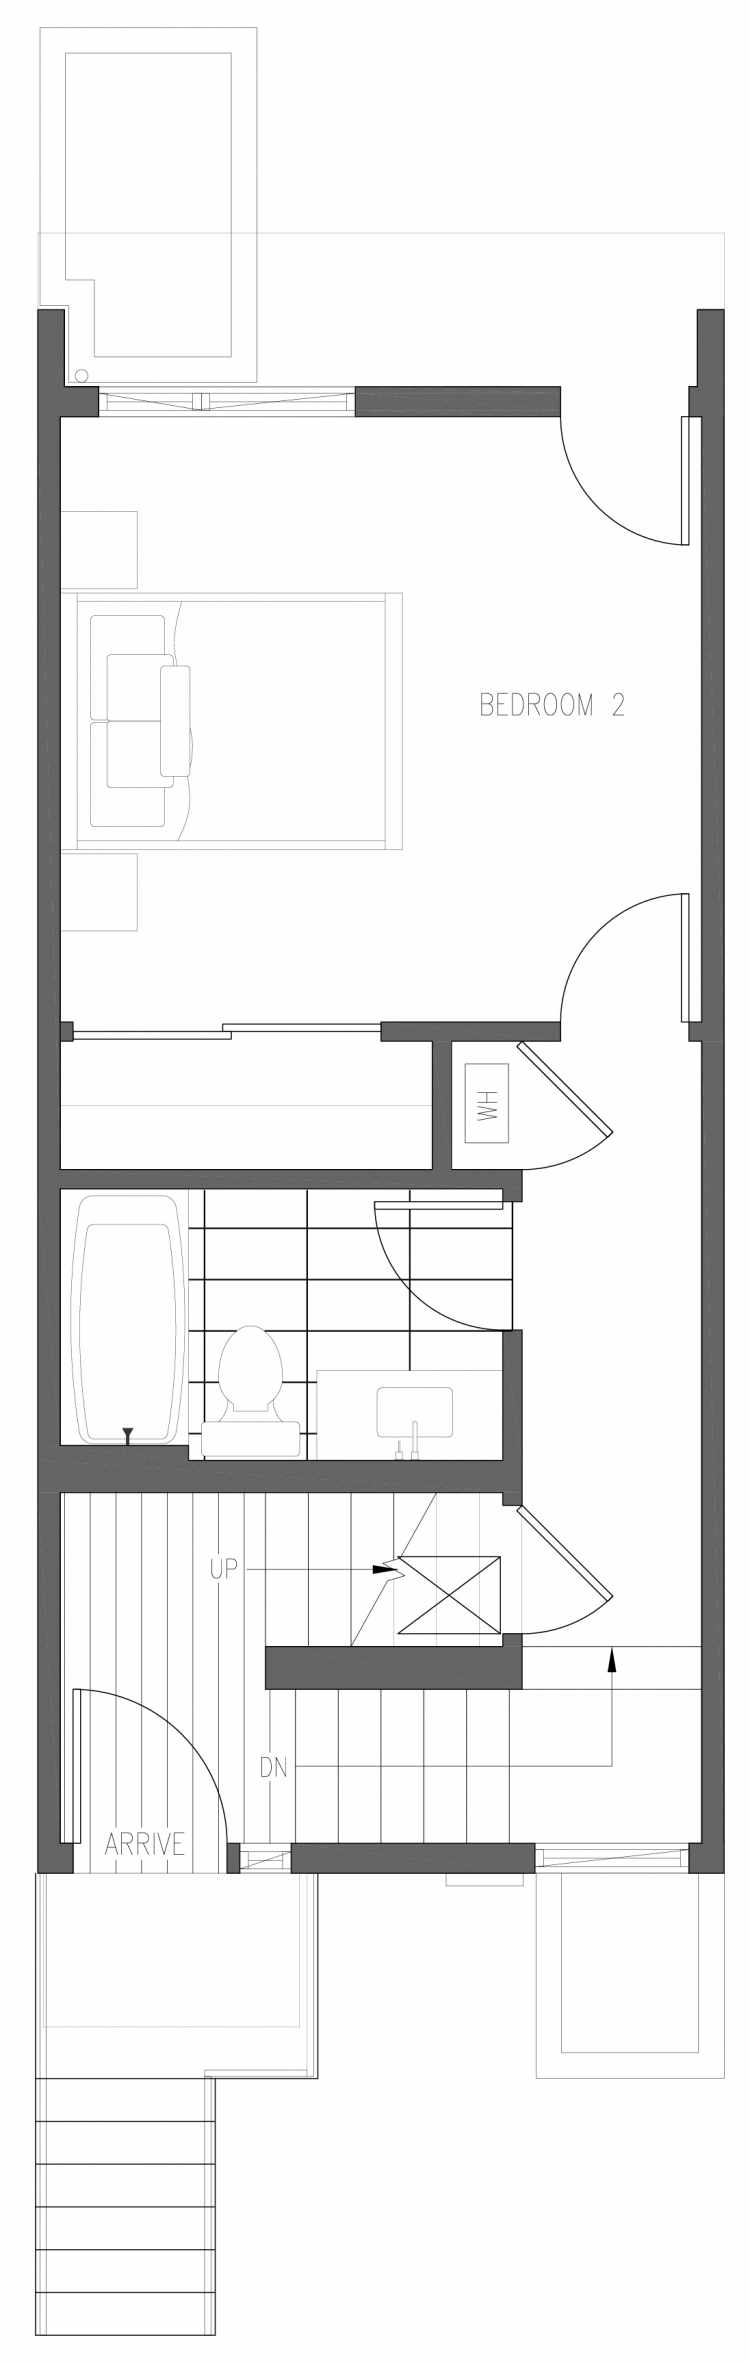 First Floor Plan of 6413 14th Ave NW, One of the Oleana Townhomes in Ballard by Isola Homes